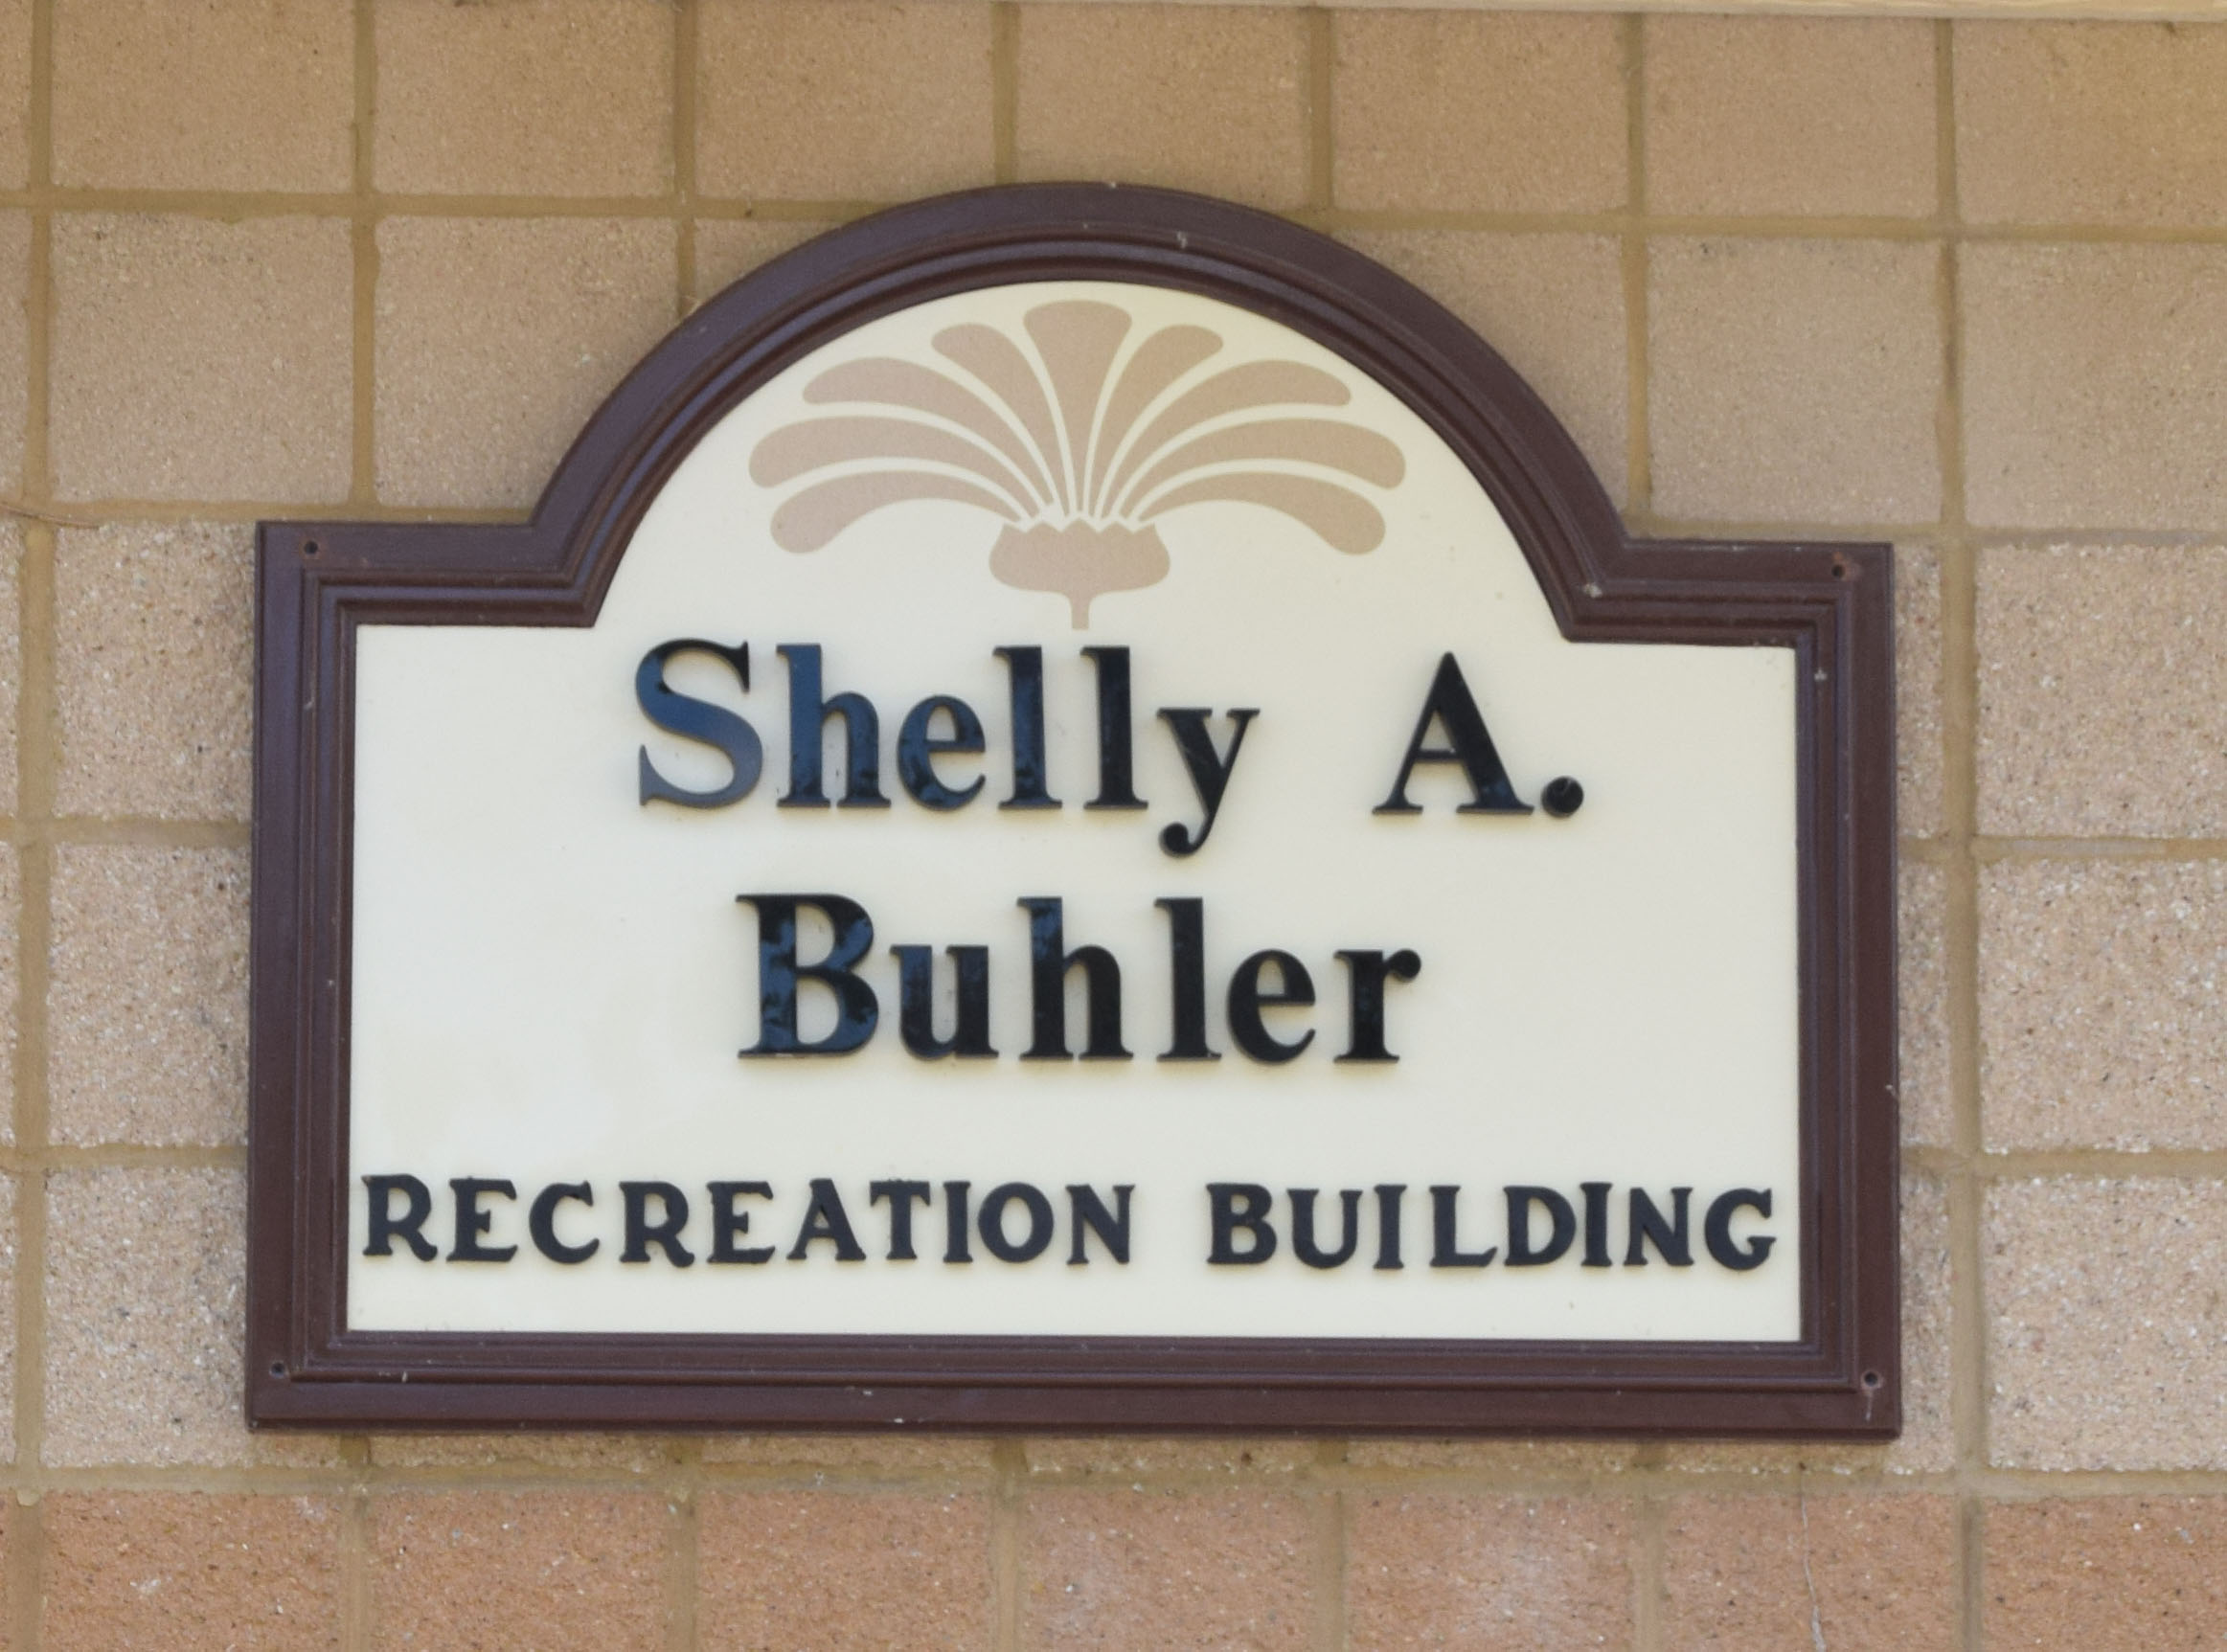 Buhler Building Sign 1